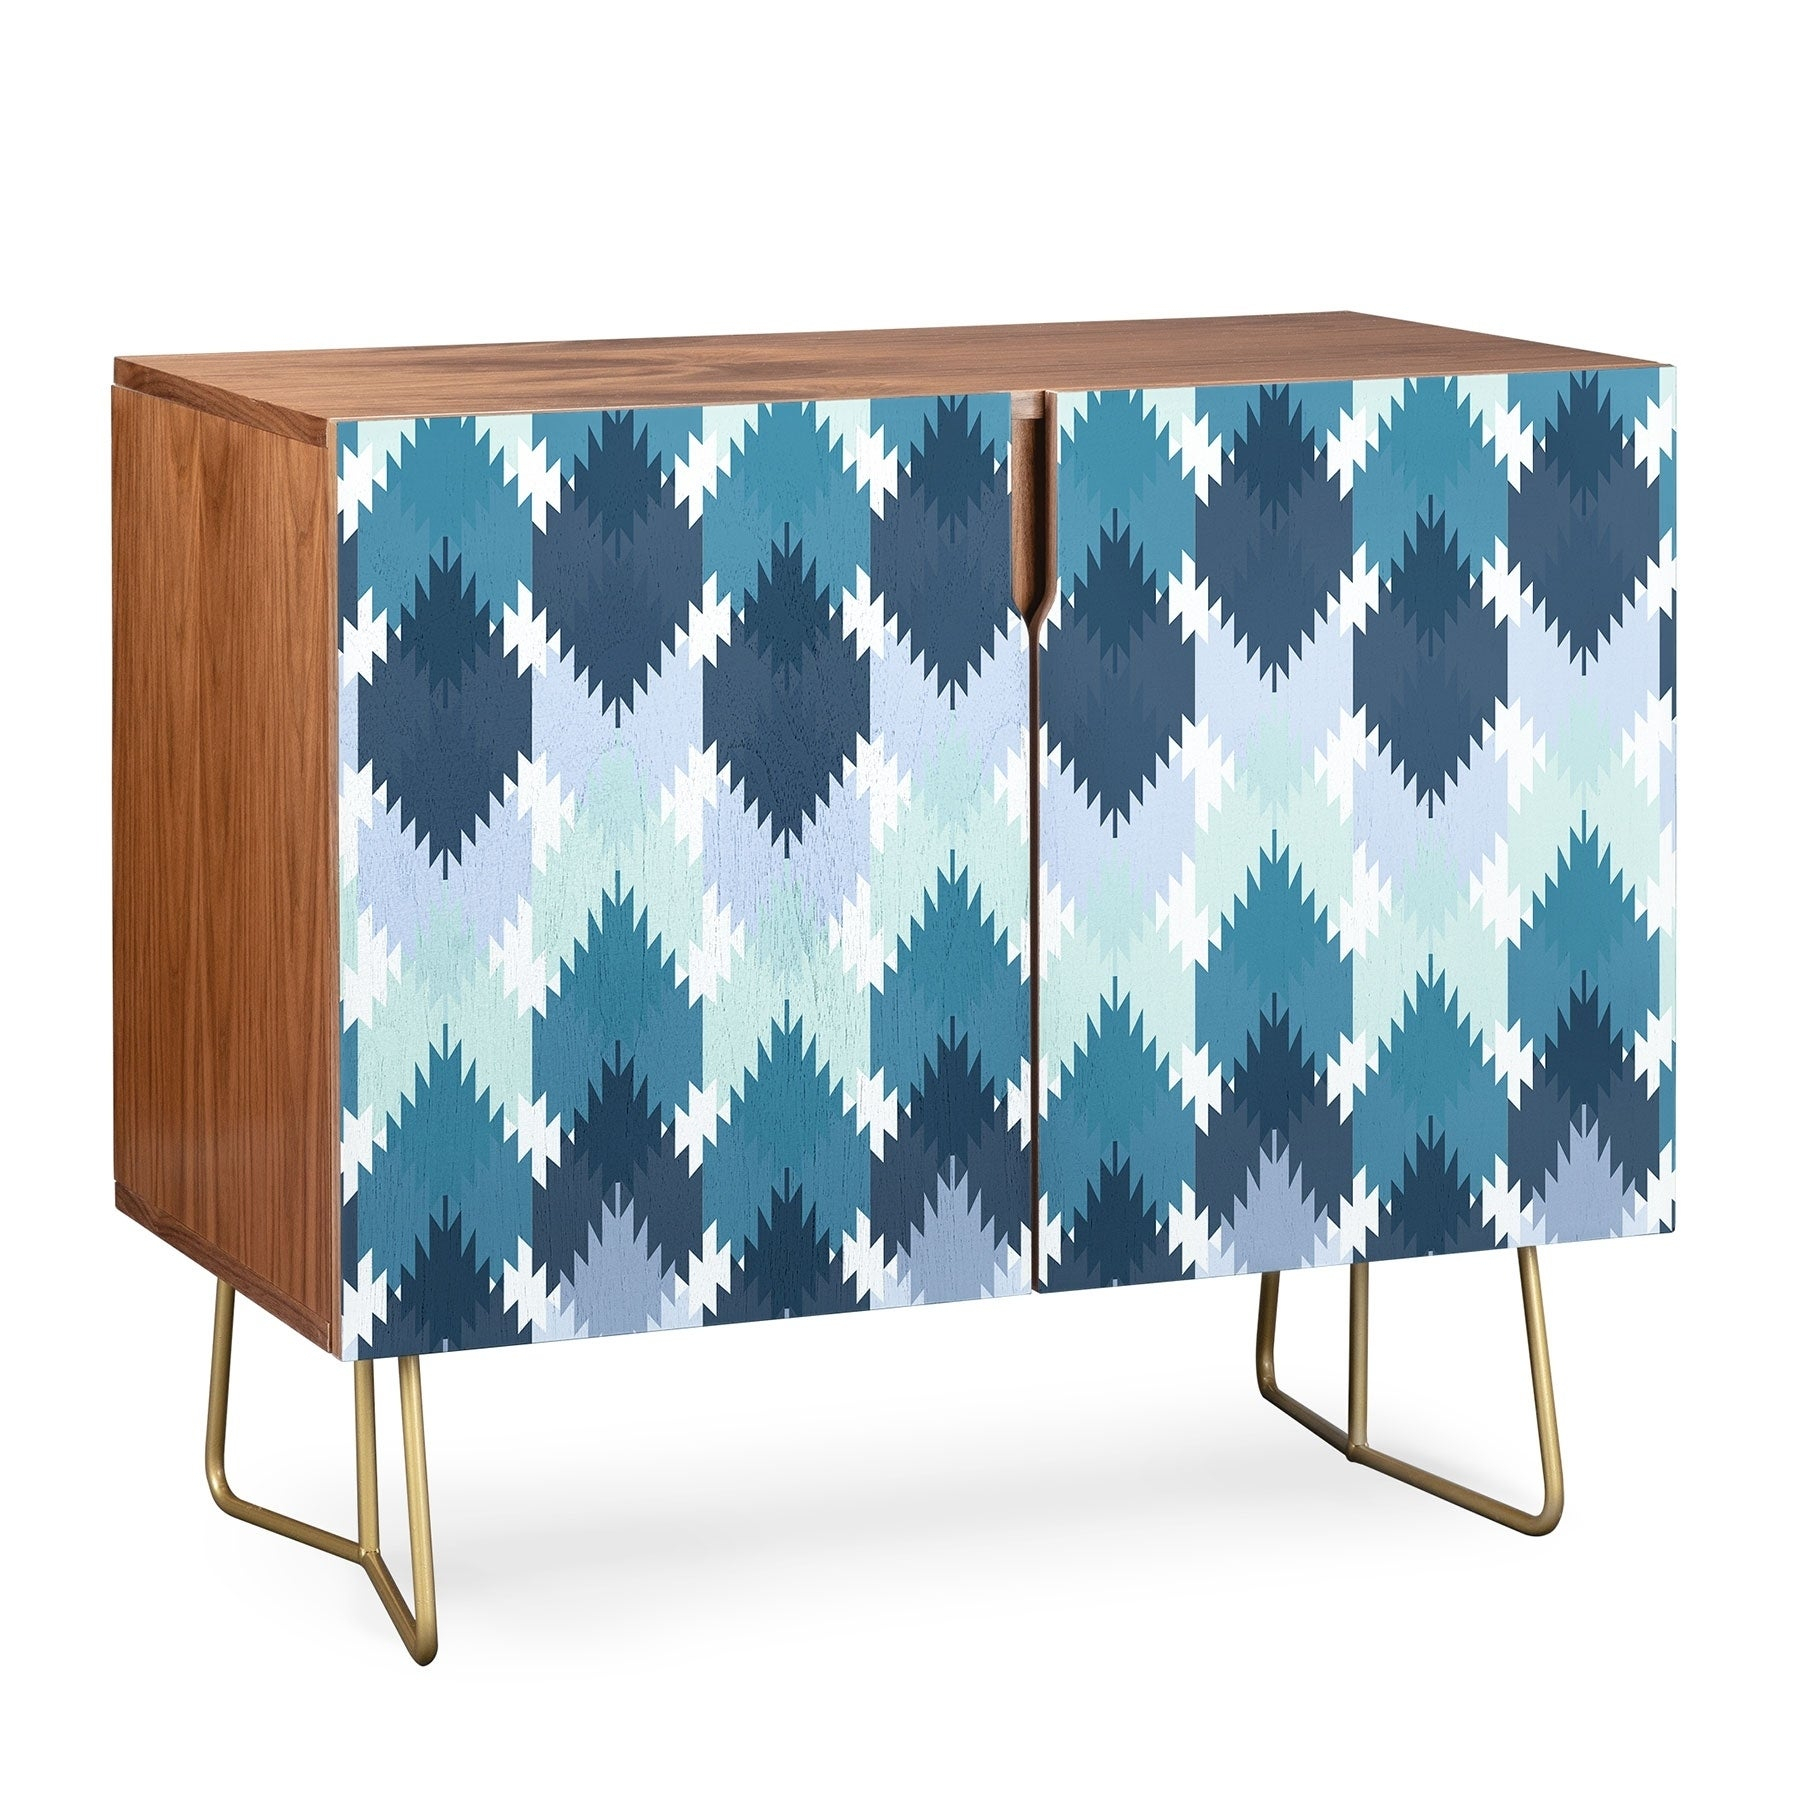 Deny Designs Cool Kilim Credenza (Birch Or Walnut, 2 Leg Options) Regarding Oenomel Credenzas (Gallery 24 of 30)